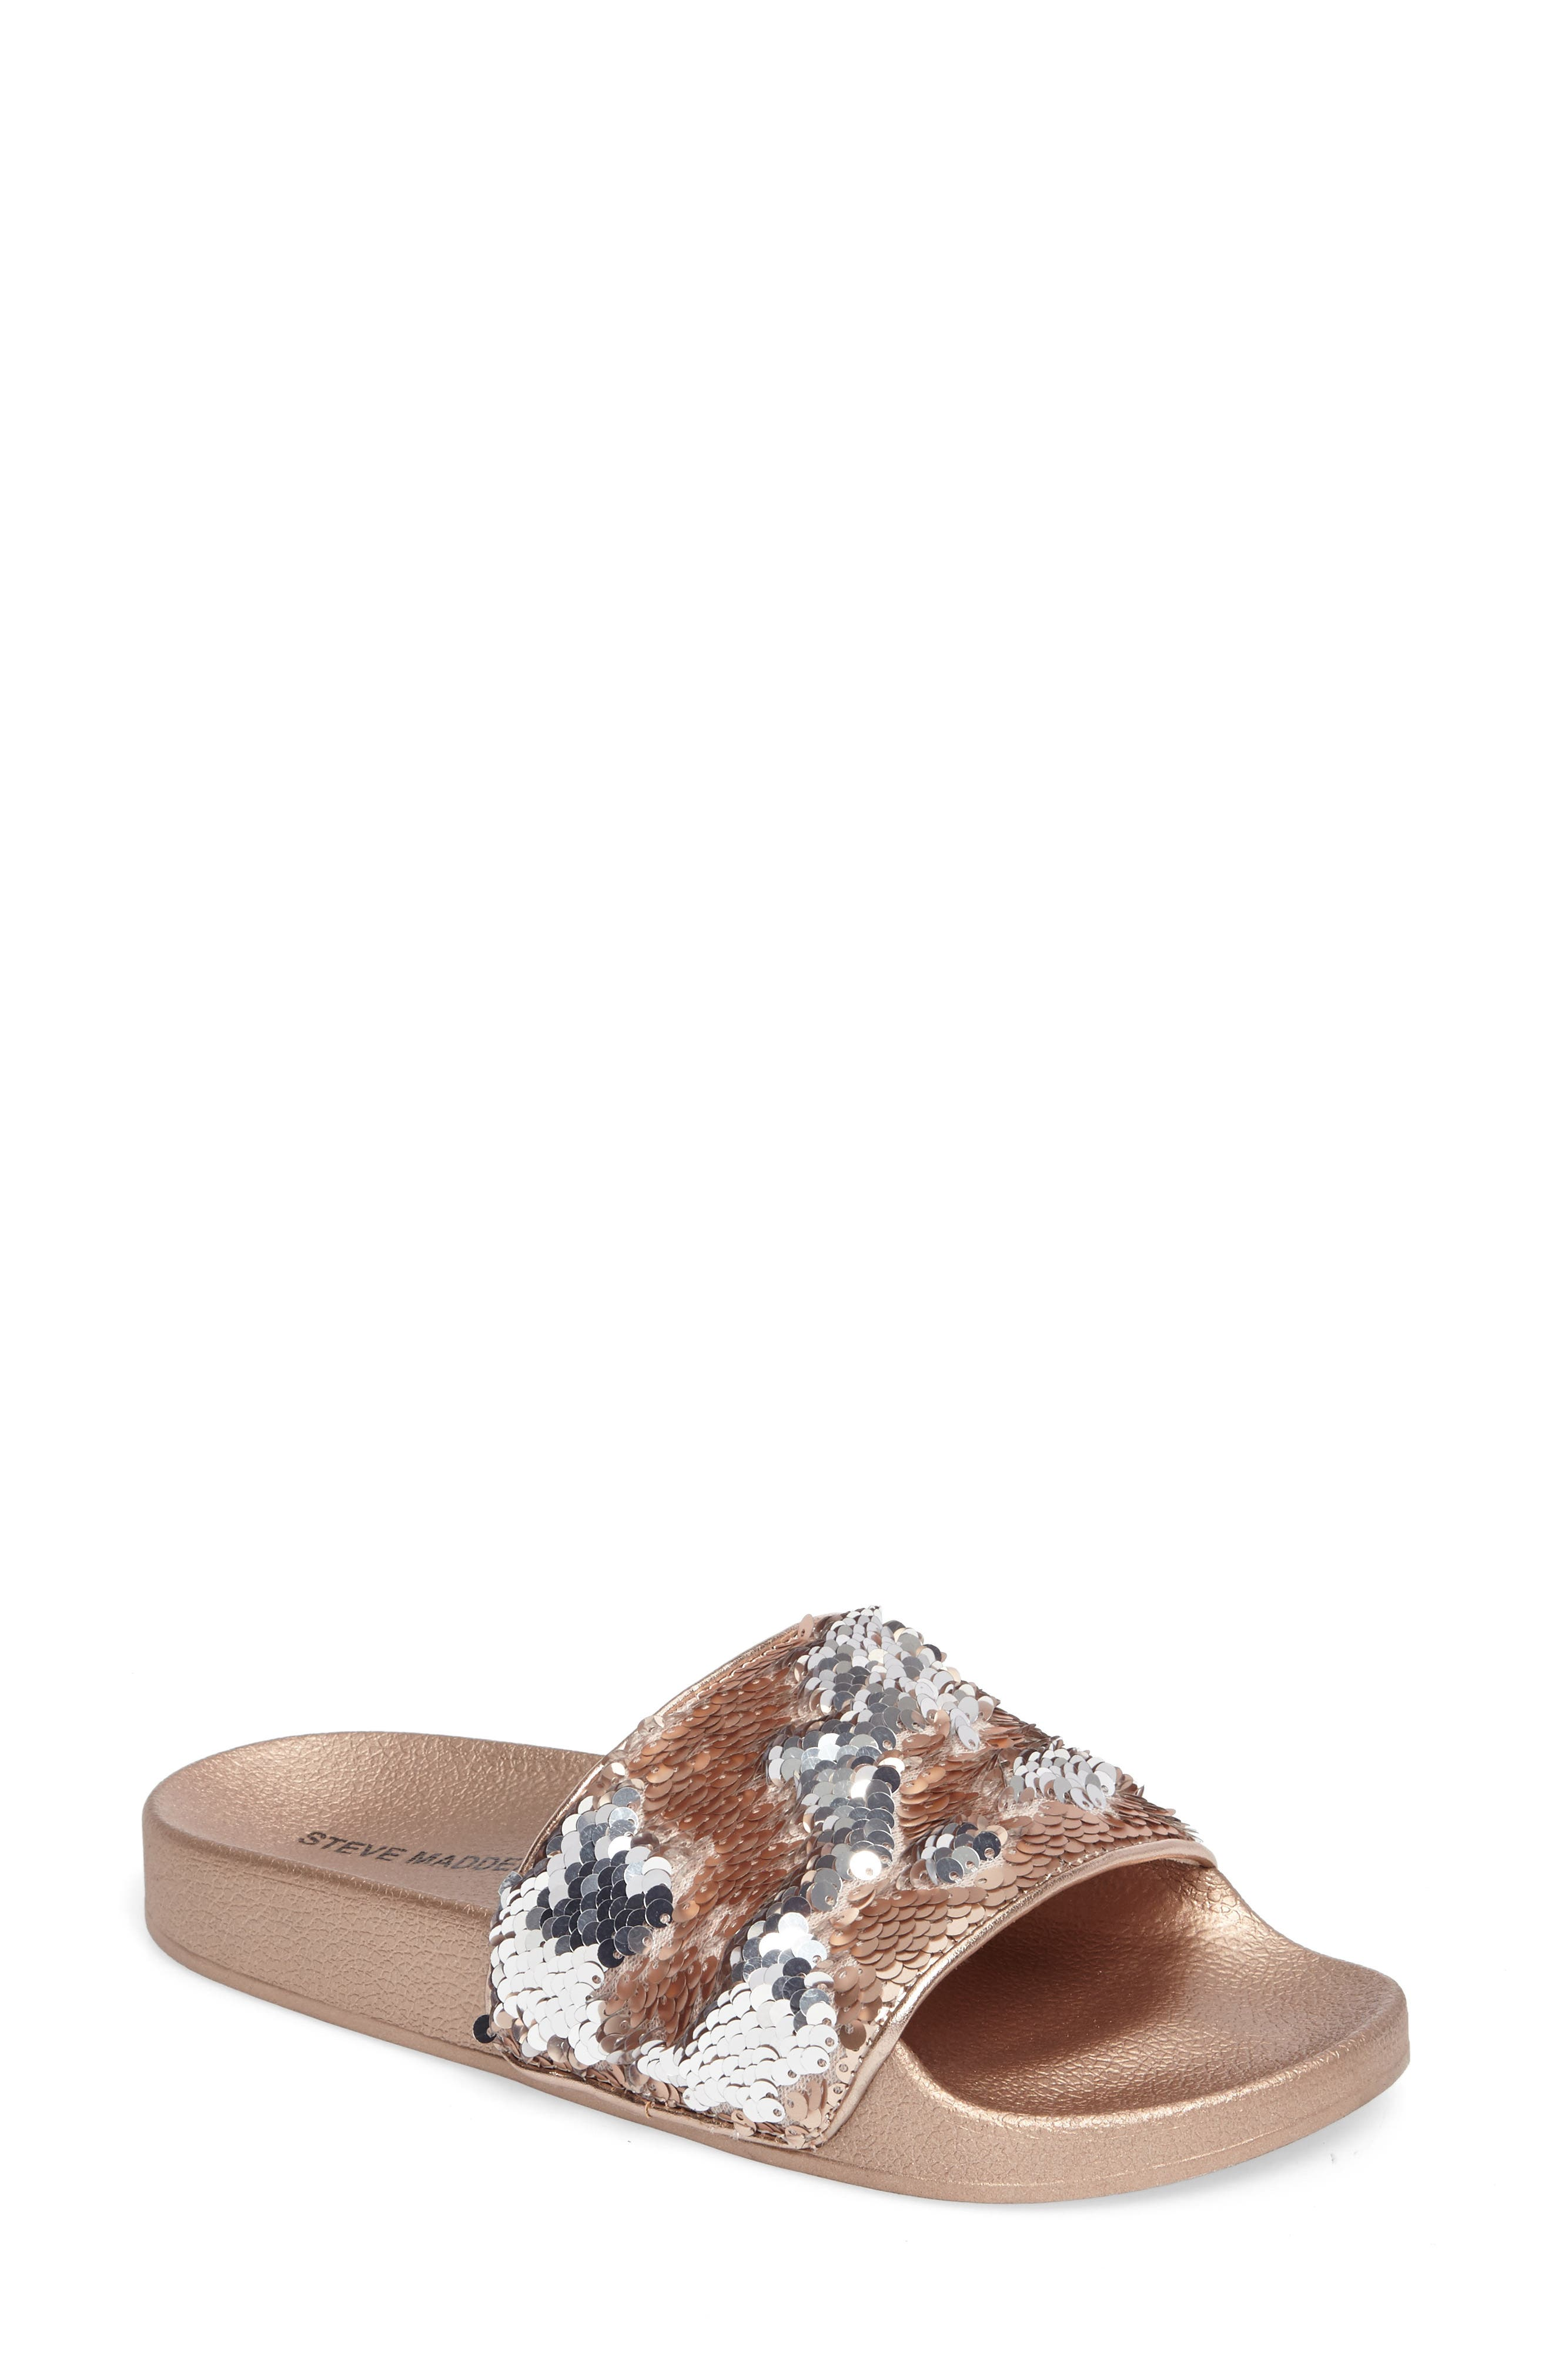 Main Image - Steve Madden Softey Sequin Slide Sandal (Women)